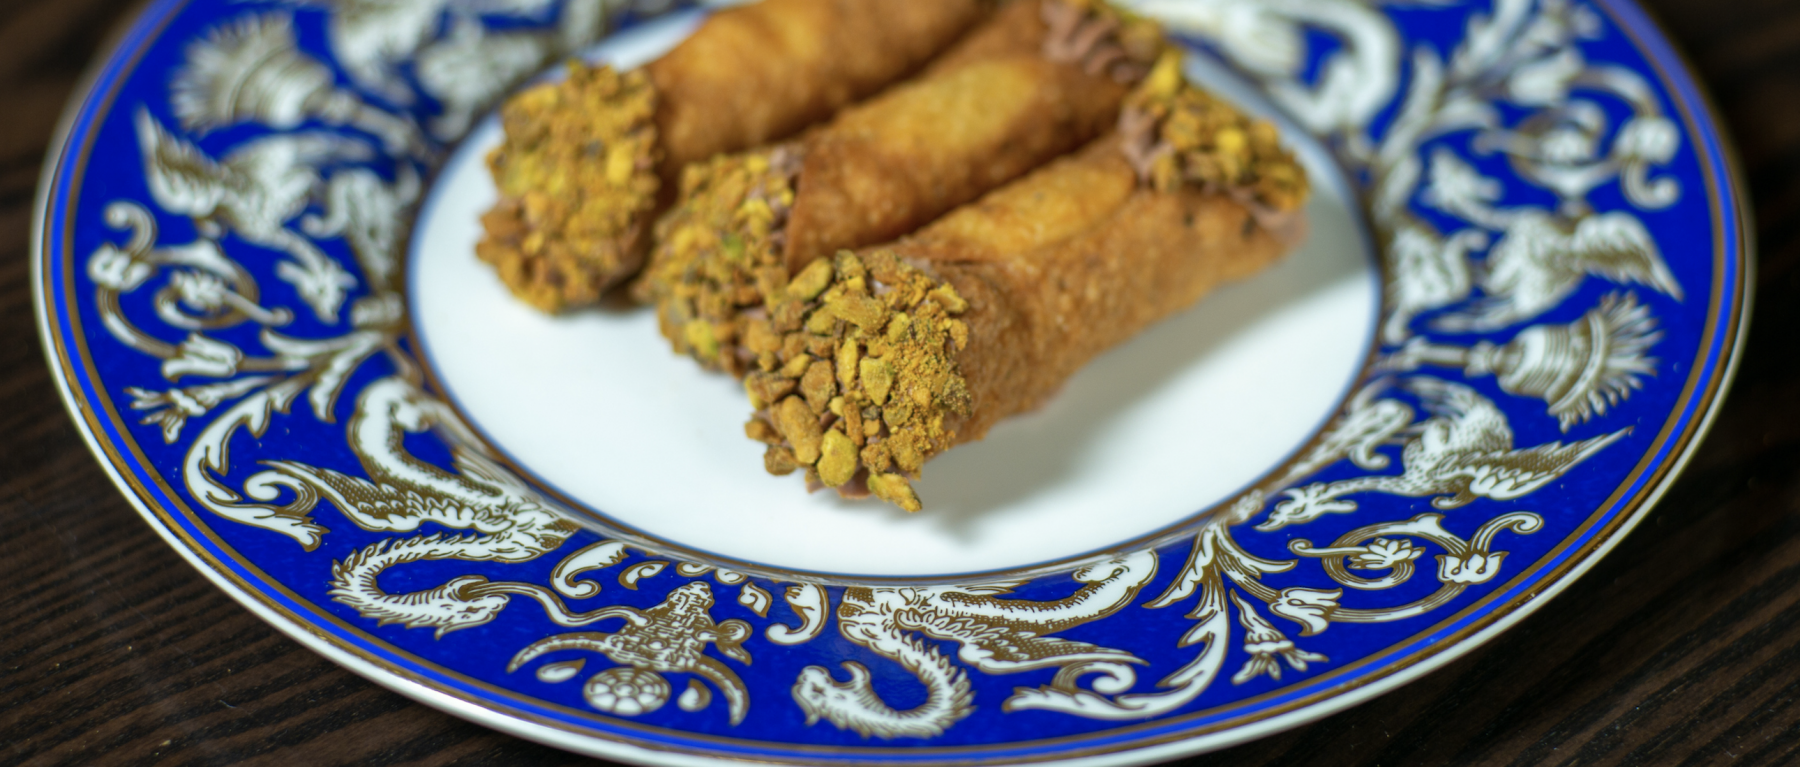 Your Weekly Indulgence: Savory Cannoli at Chumley's